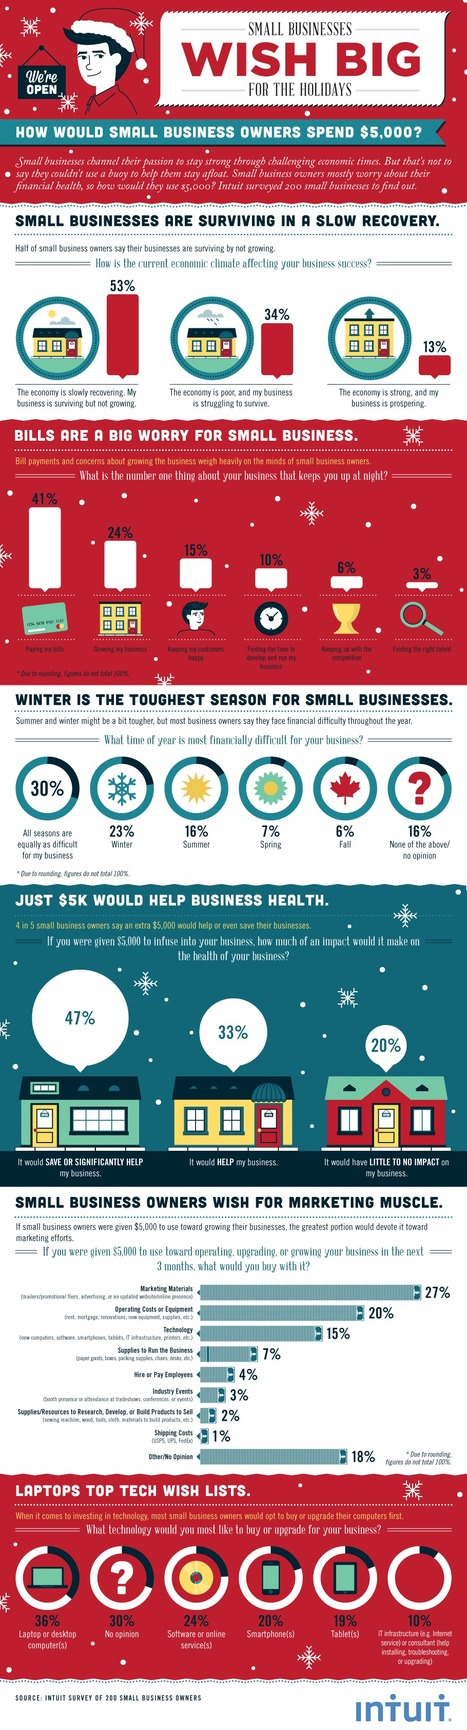 Here's How 200 Small Businesses Would Spend a Gift of $5000 During the Holidays | Business 2 Community | Digital-News on Scoop.it today | Scoop.it